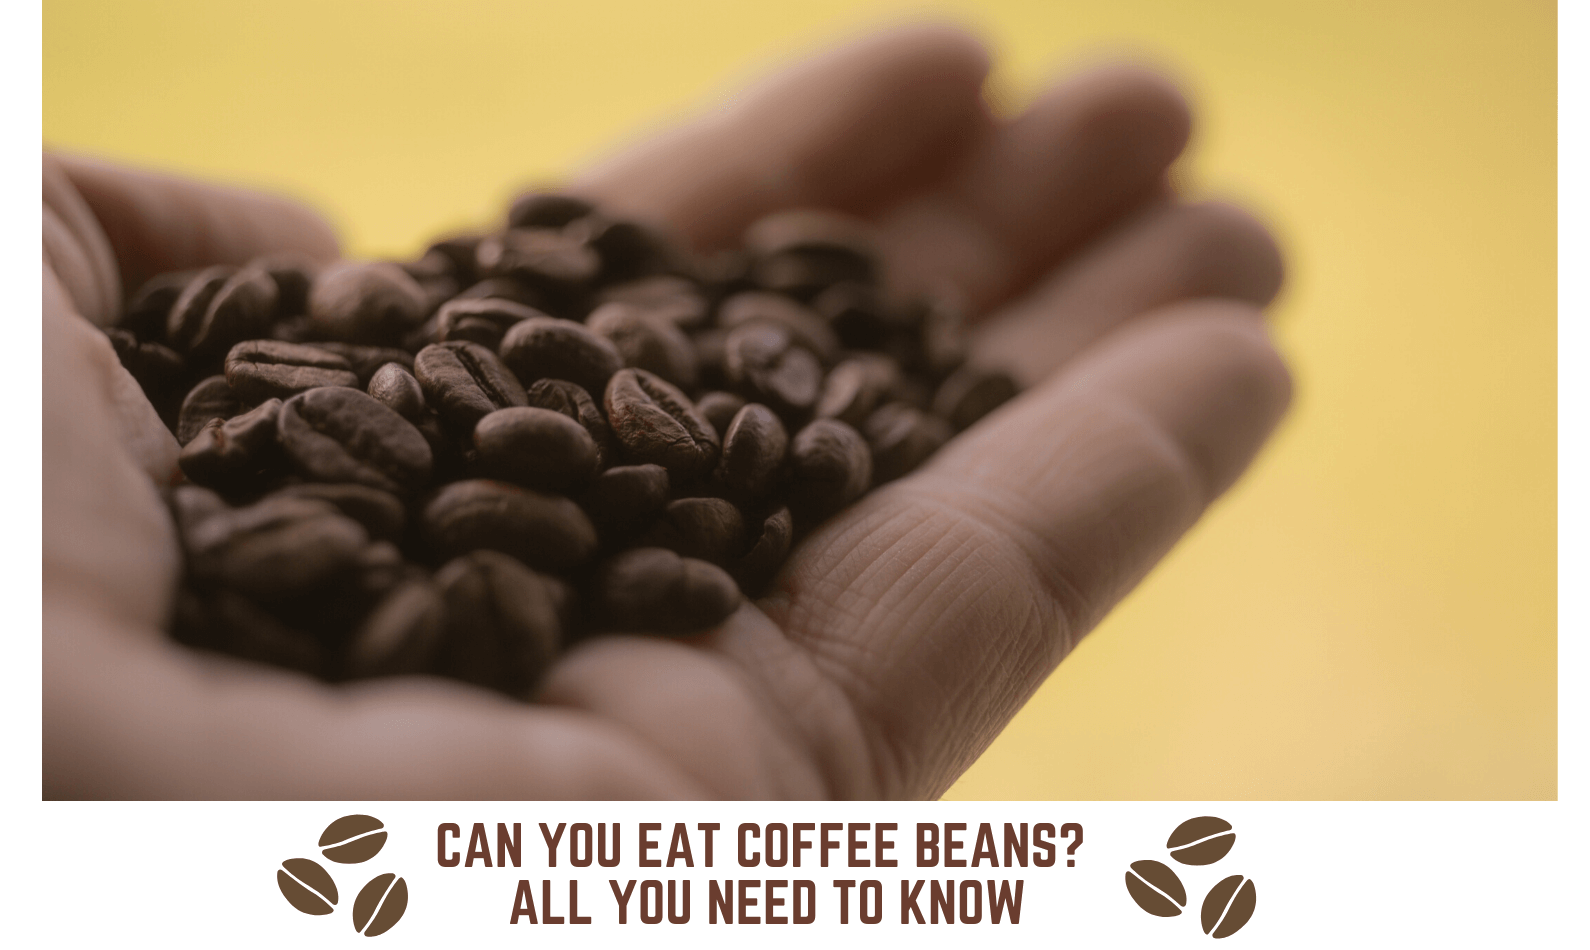 Can You Eat Coffee Beans